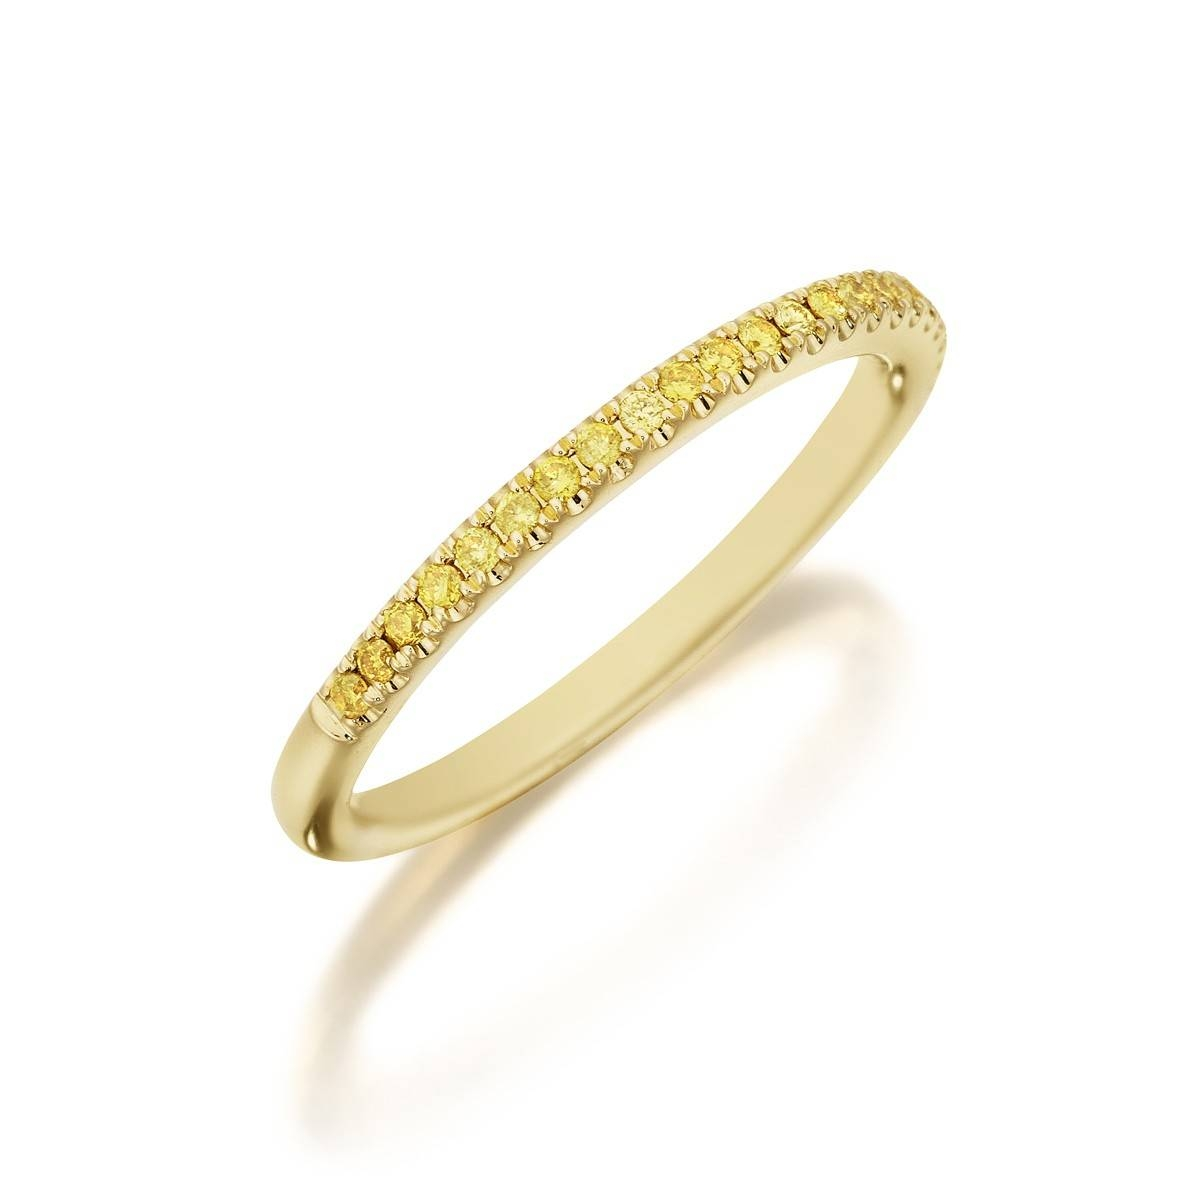 Show Me Your Fancy Color Solitaire + Wedding Band – Weddingbee Inside Wedding Bands With Yellow Diamonds (View 11 of 15)